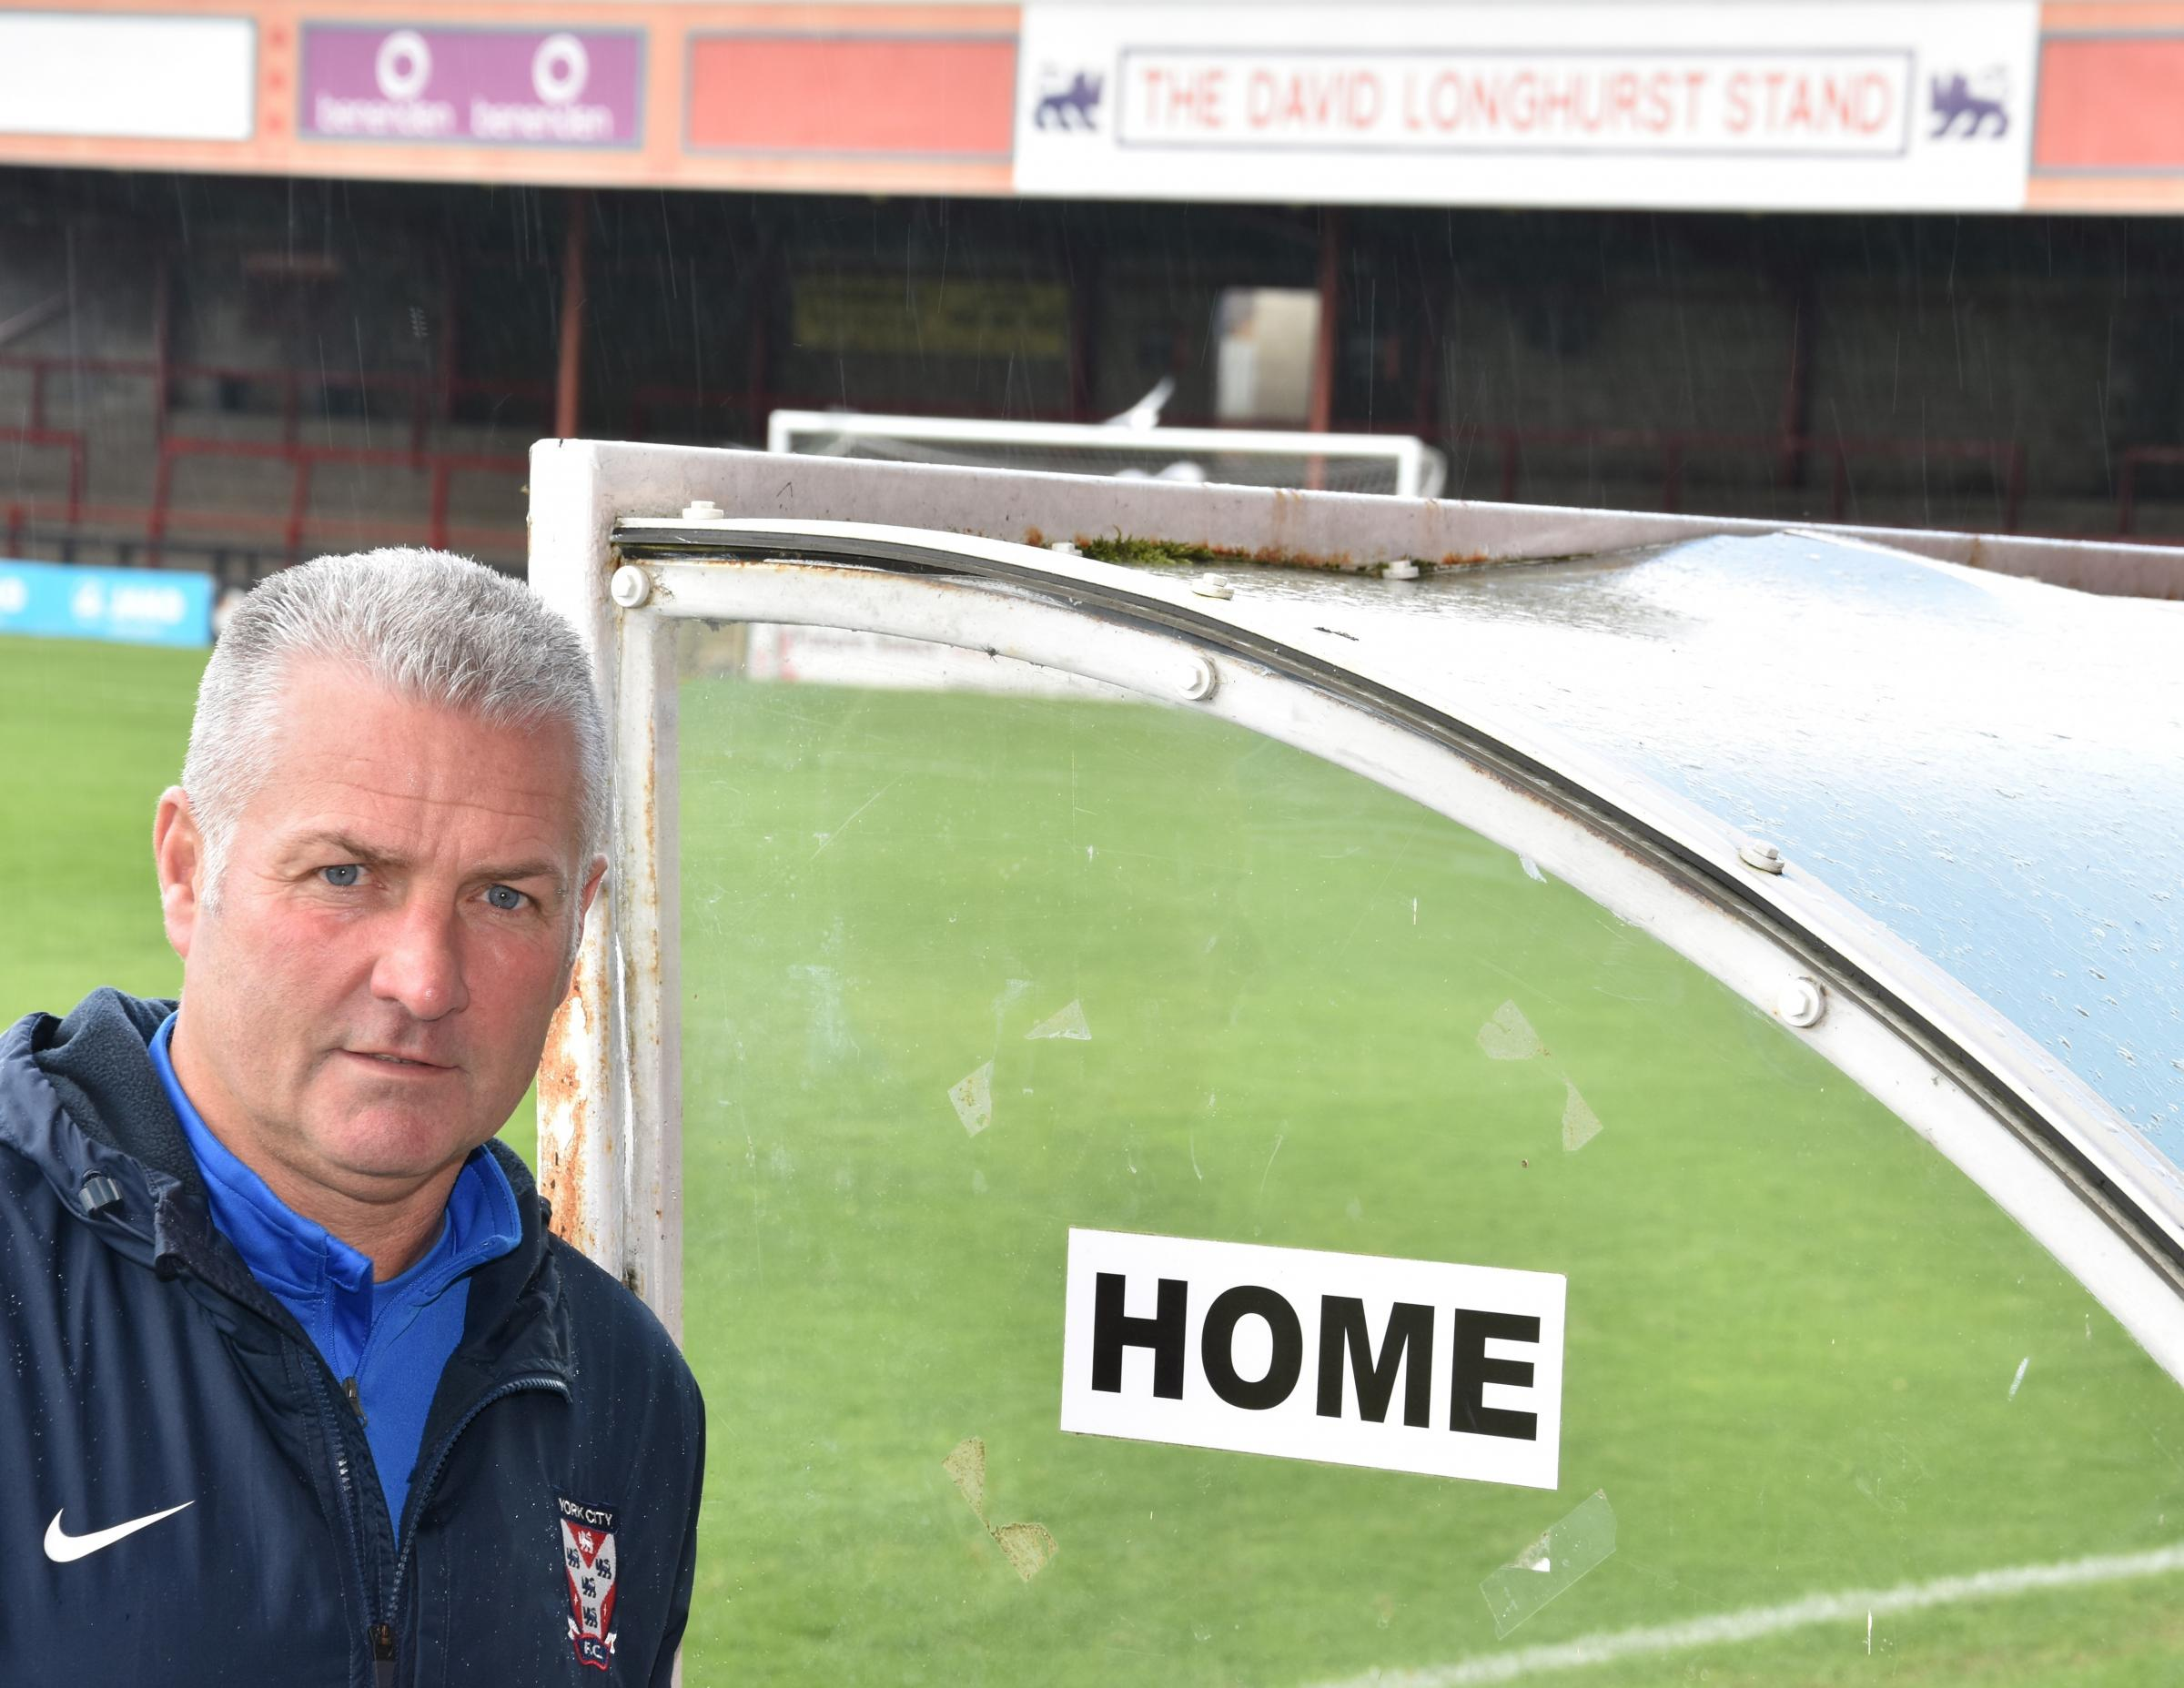 RALLY CRY: Gary Mills has urged York City's patient supporters to get behind their team